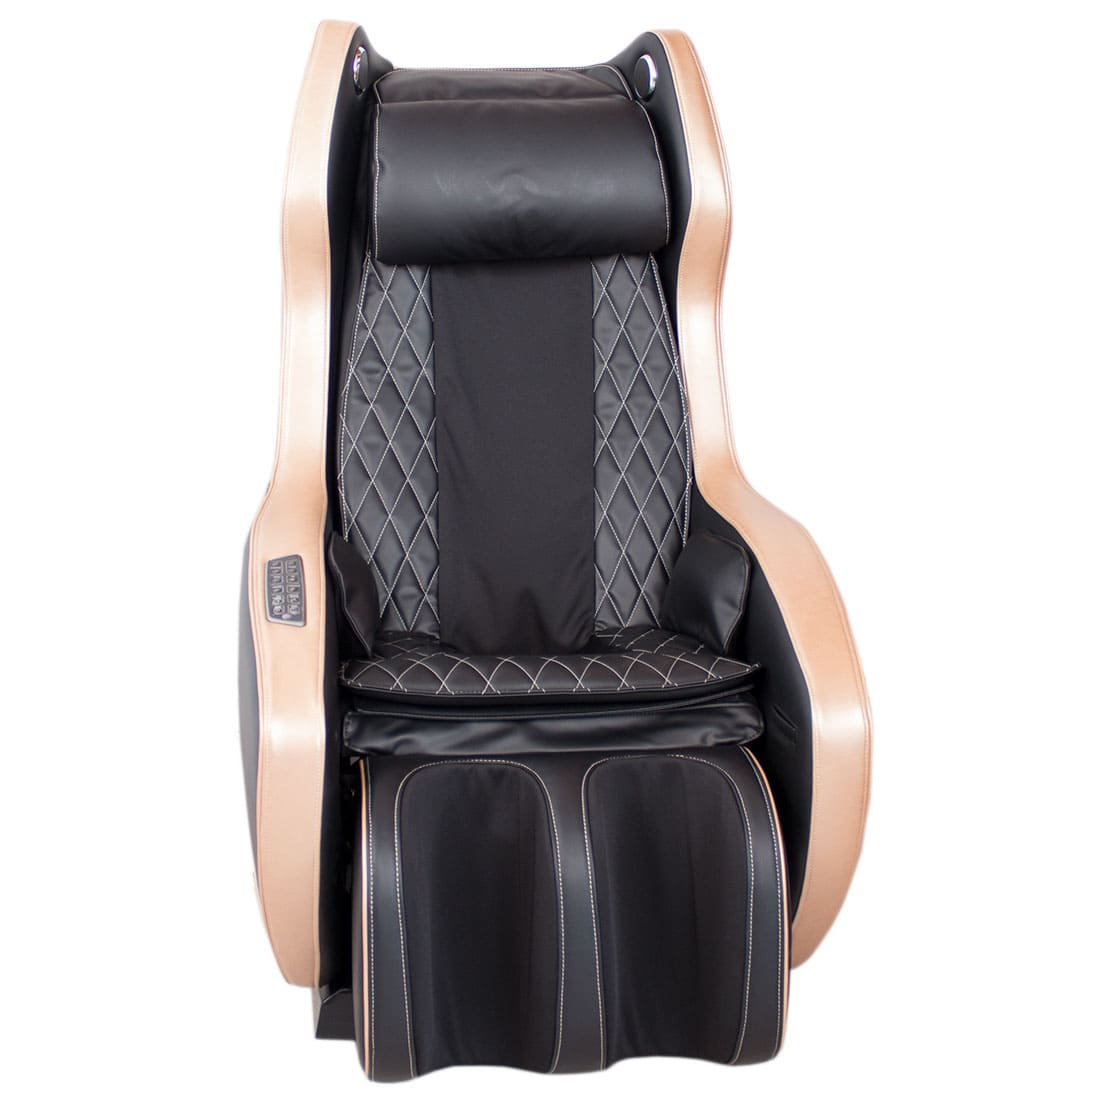 bend-massage-chair